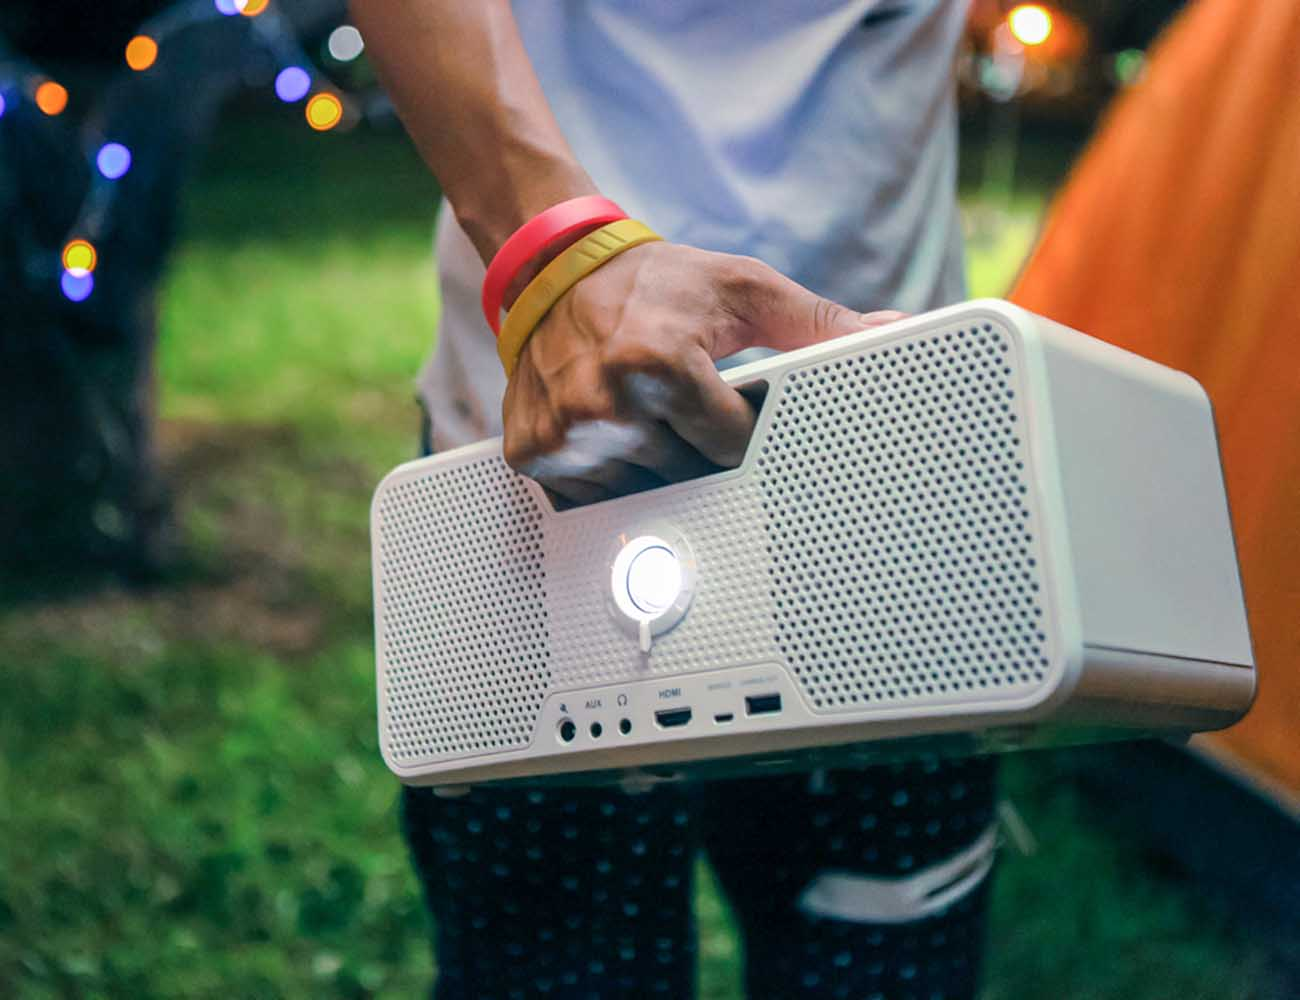 Dashbon+Flicks+Mobile+Cordless+Boombox+Projector